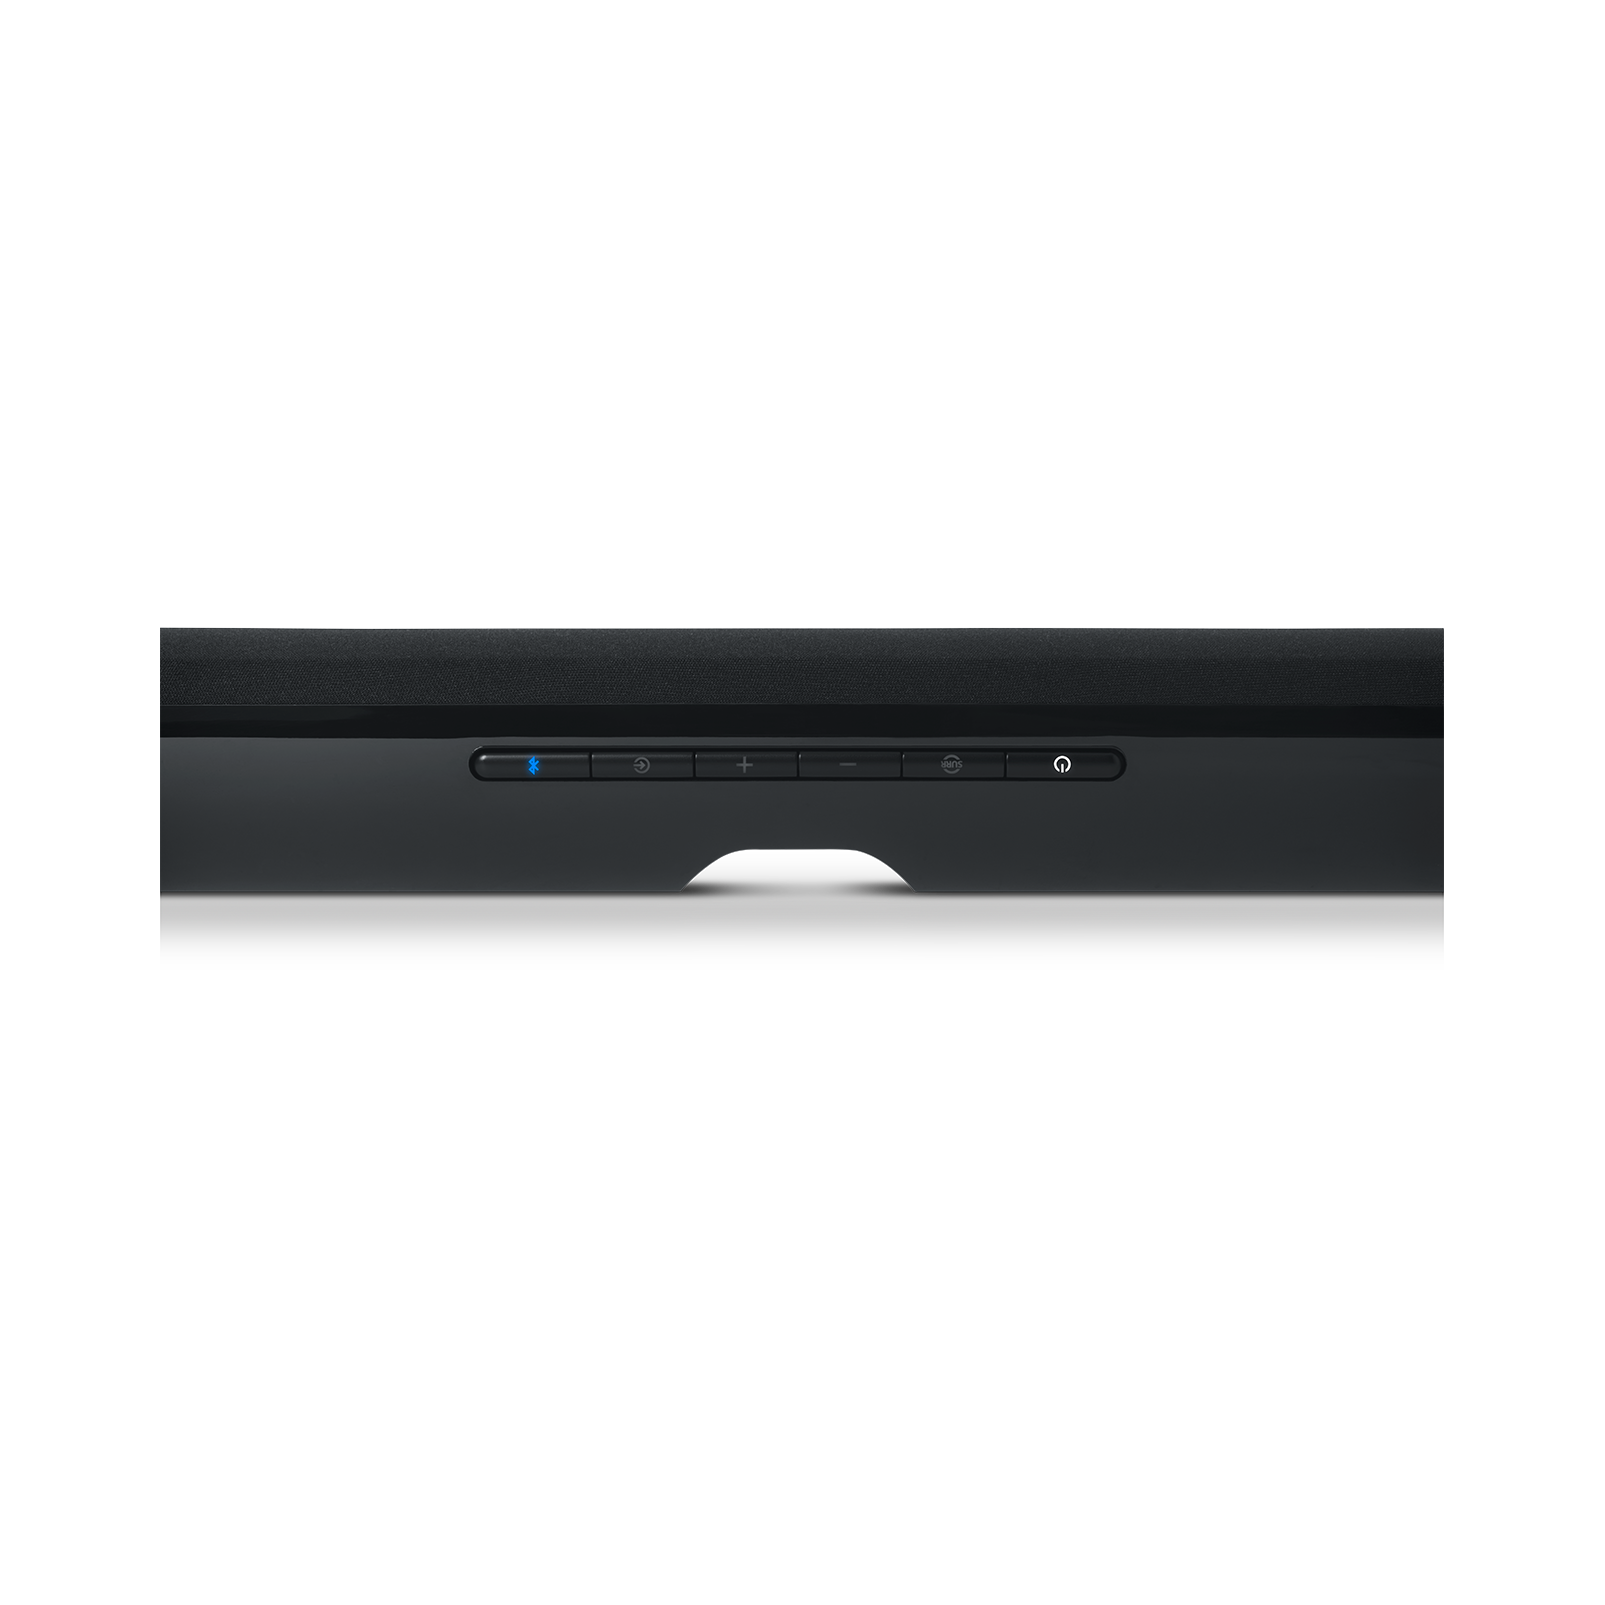 HK SB20 - Black - Advanced soundbar with Bluetooth and powerful wireless subwoofer - Detailshot 3